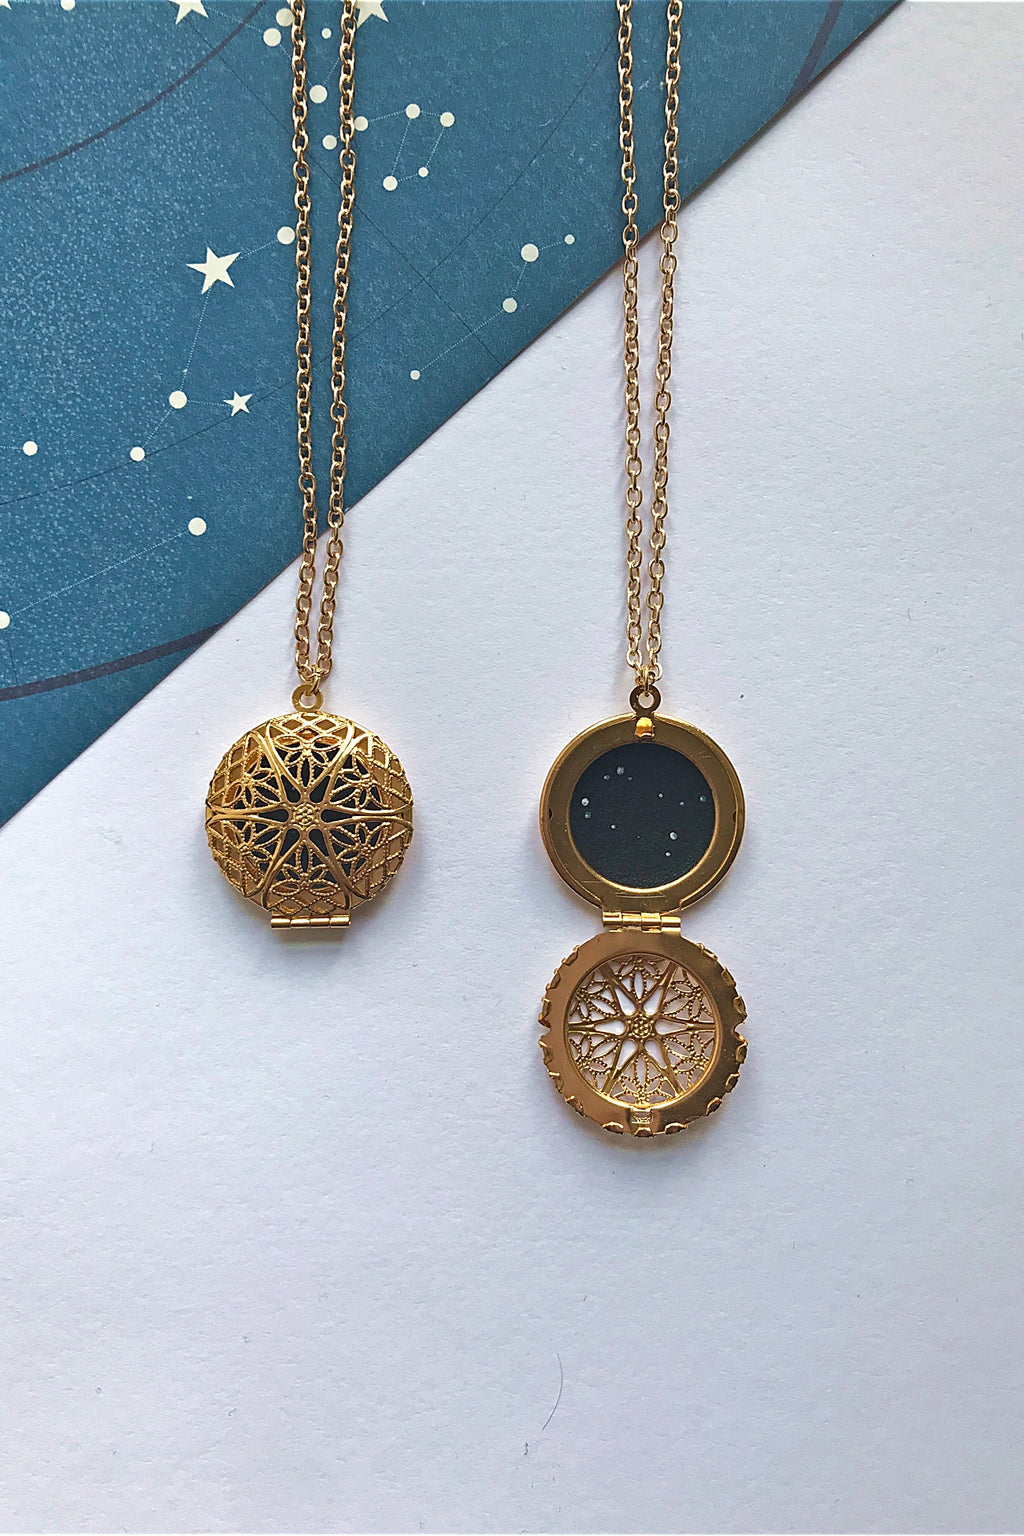 Gemini constellation locket